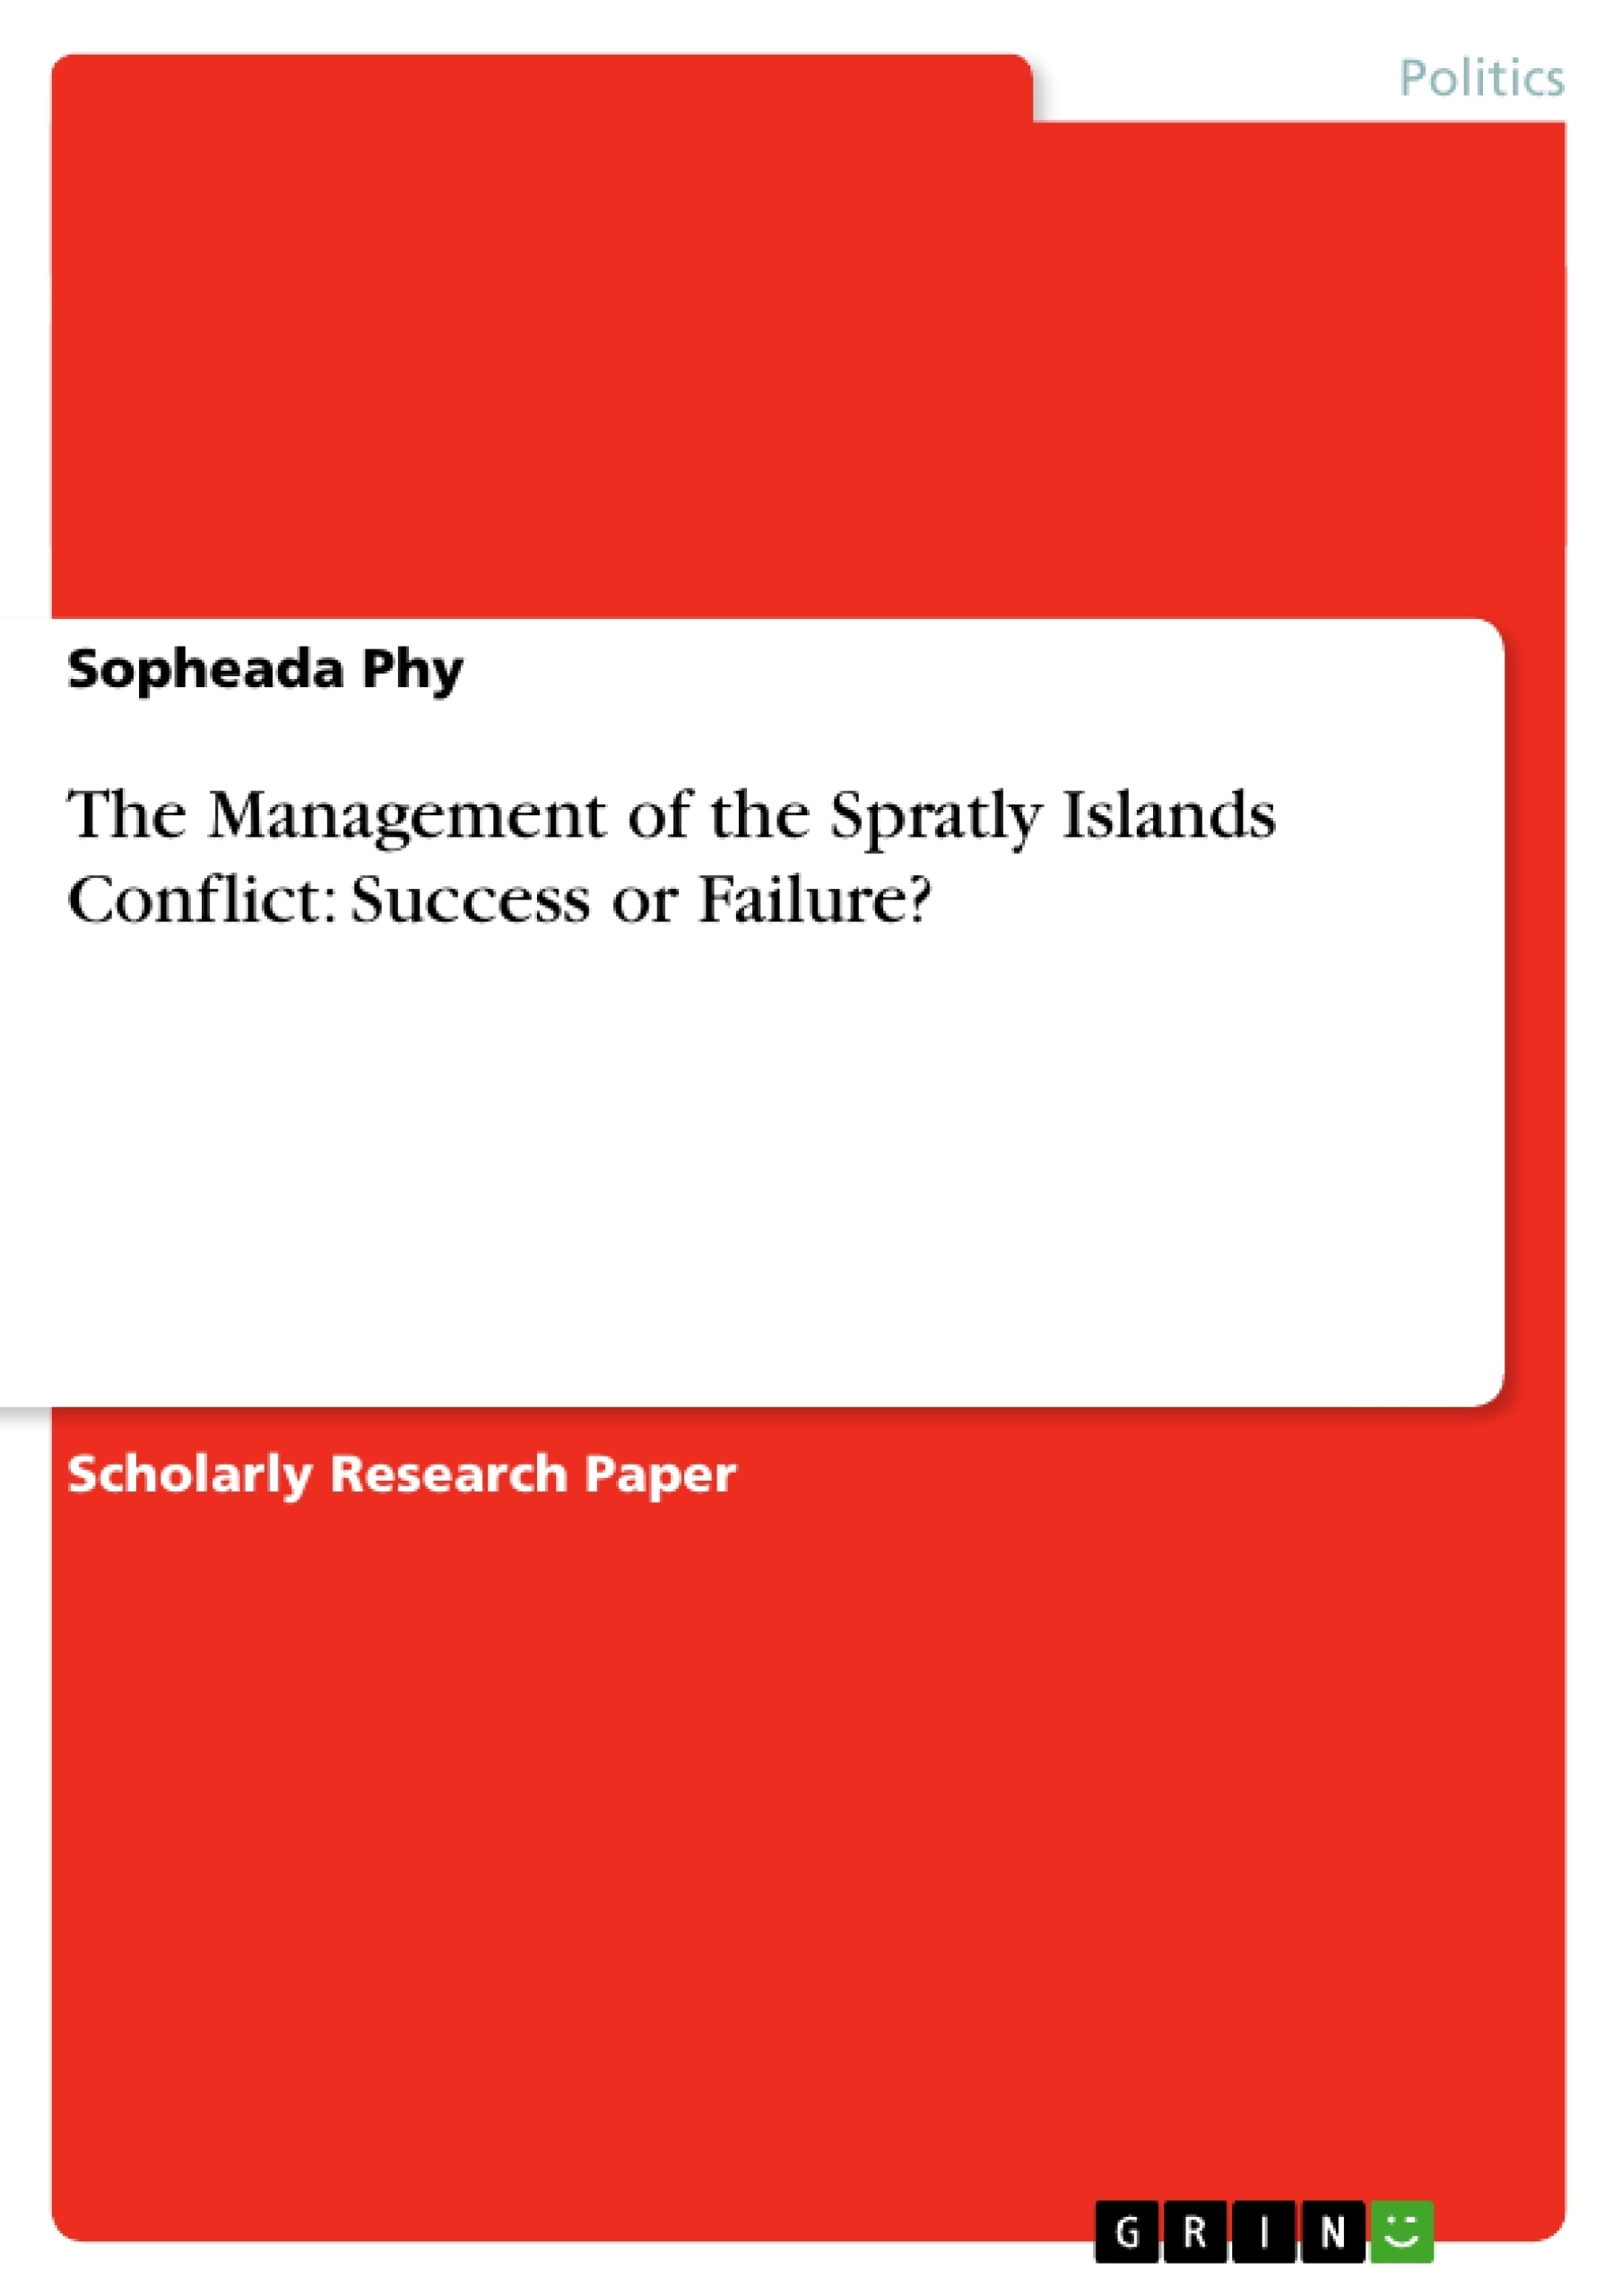 Title: The Management of the Spratly Islands Conflict: Success or Failure?